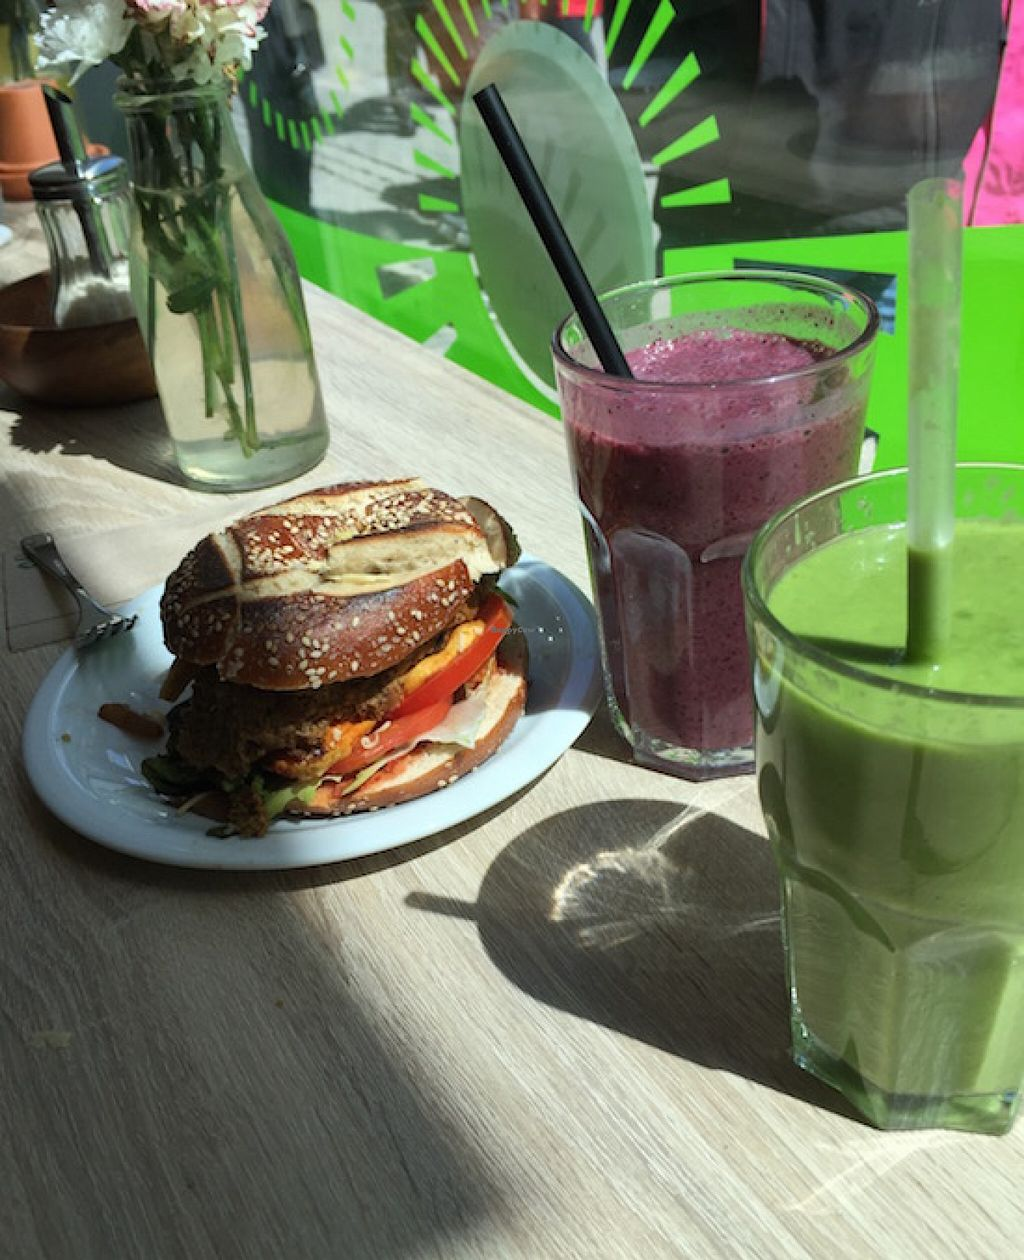 """Photo of CLOSED: Goodies  by <a href=""""/members/profile/Shel%20Graves"""">Shel Graves</a> <br/>Bagel sandwich and smoothies <br/> May 22, 2016  - <a href='/contact/abuse/image/52829/150279'>Report</a>"""